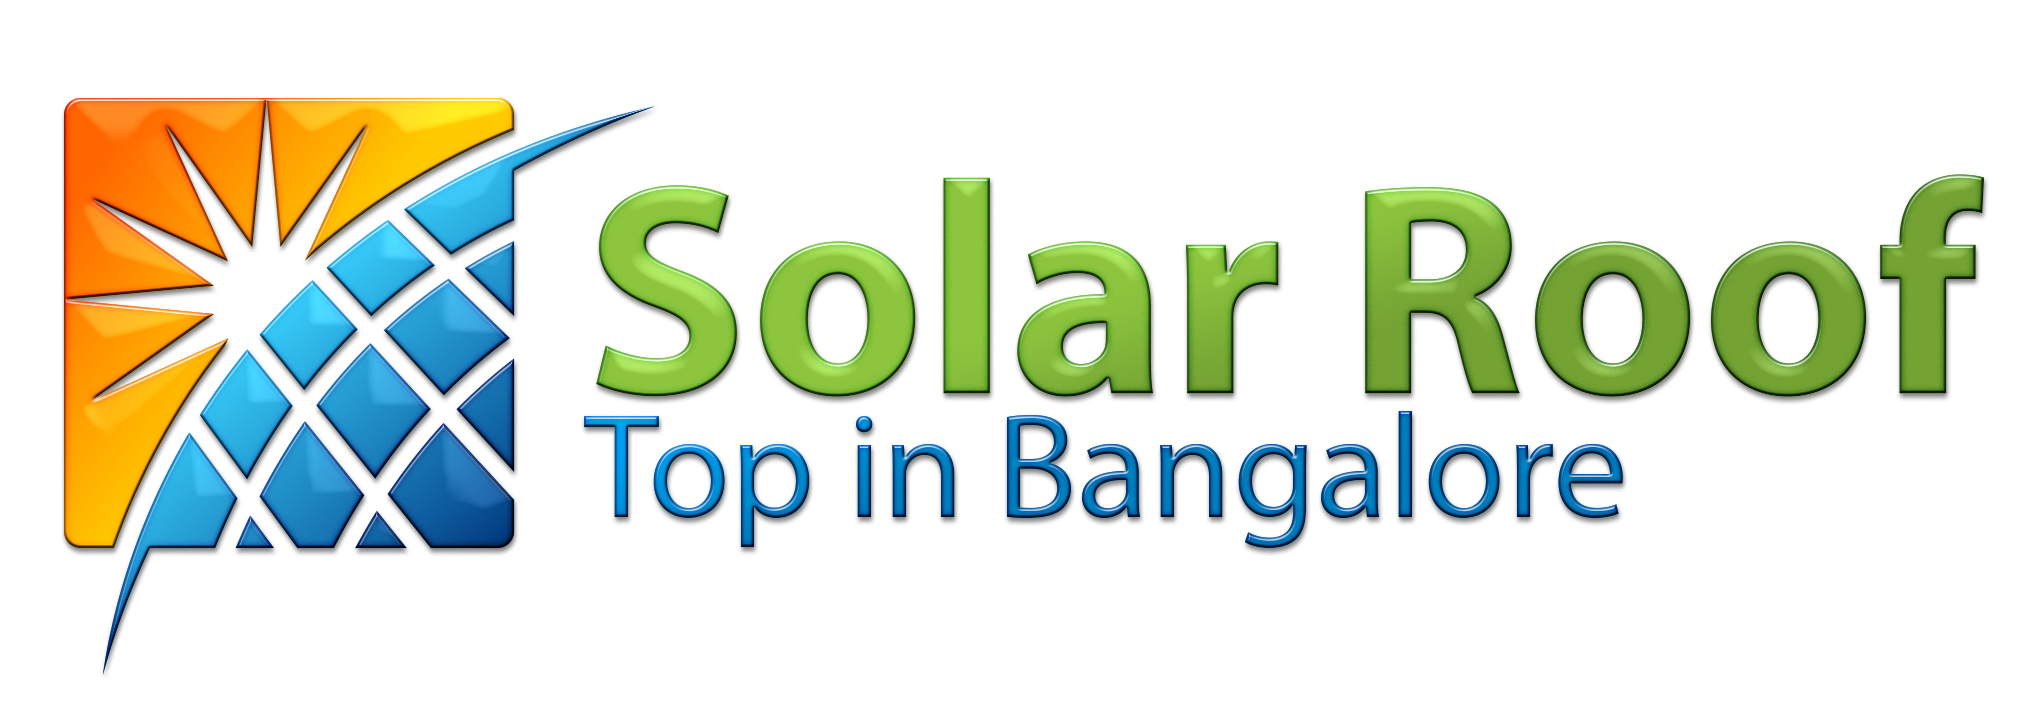 Solar Roof Top in Bangalore